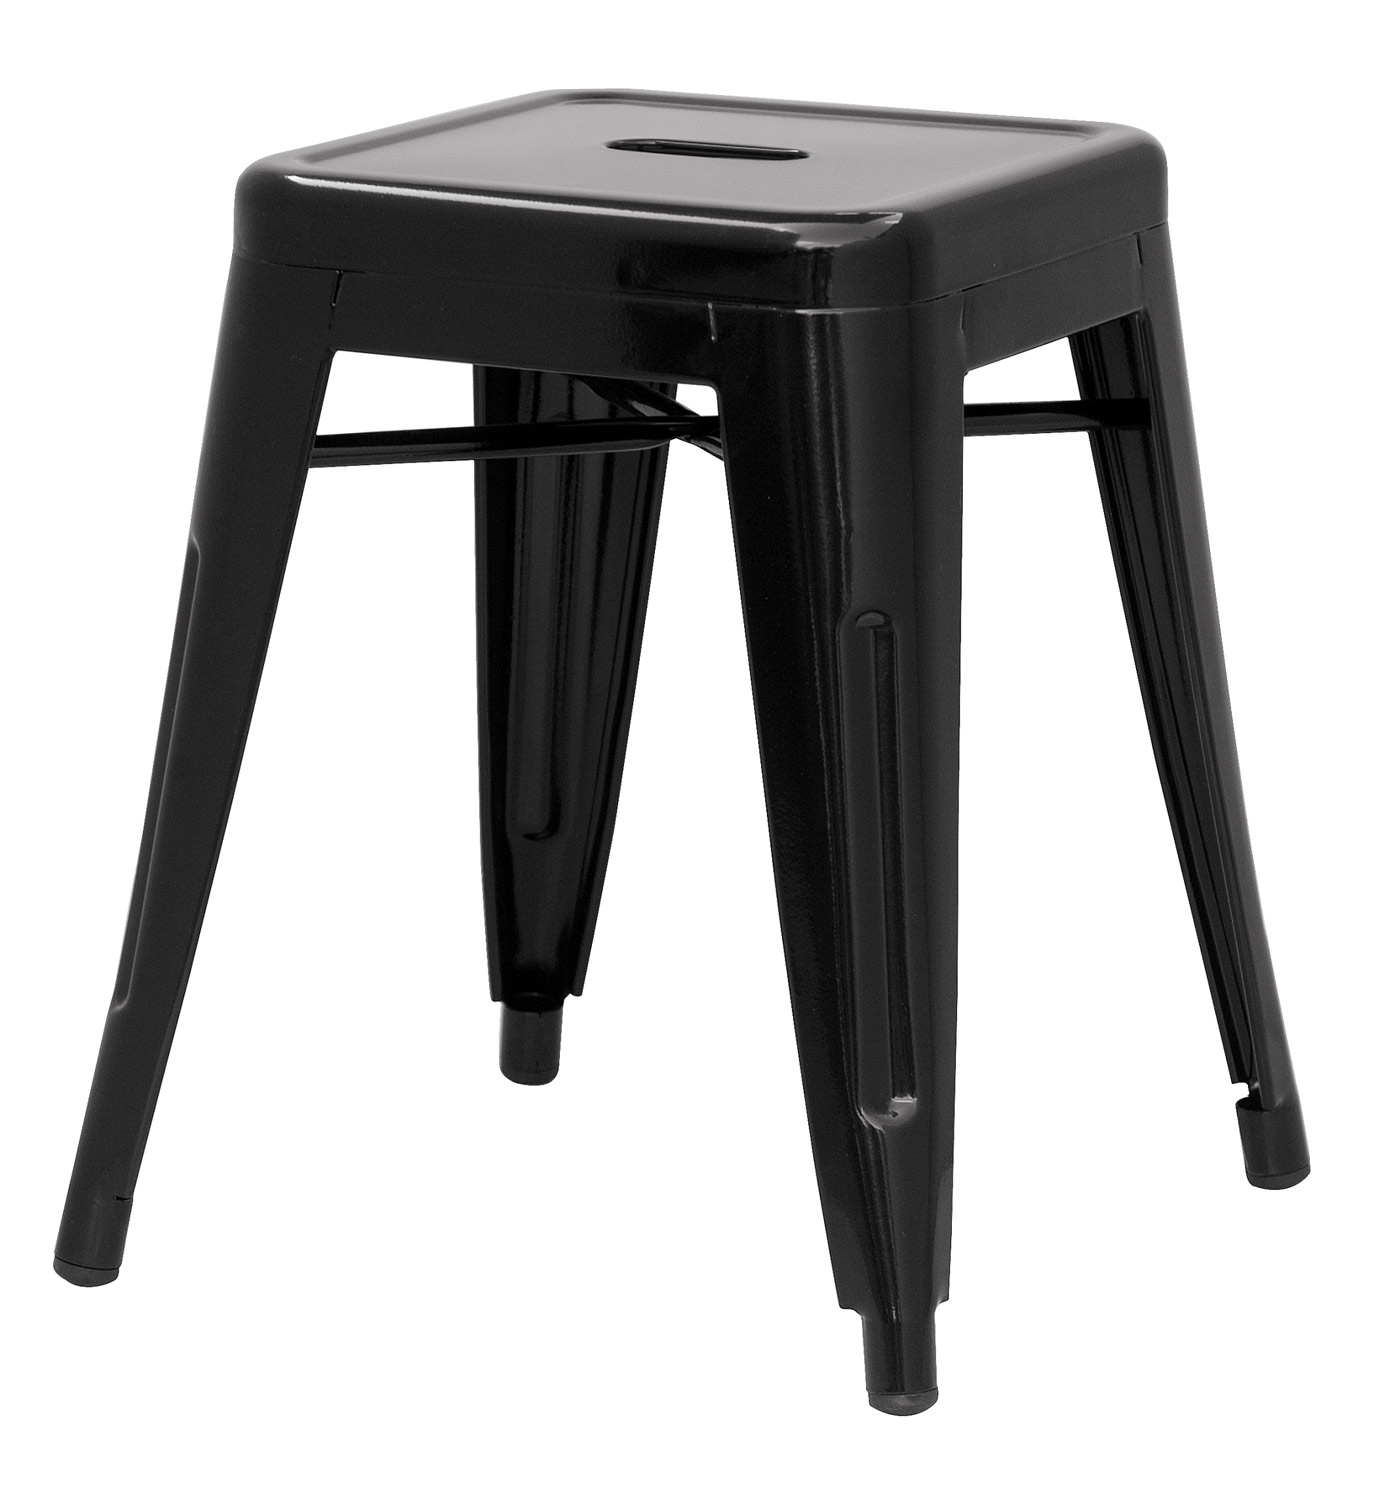 Chintaly Imports 8018 Galvanized Steel Side Chair - Black